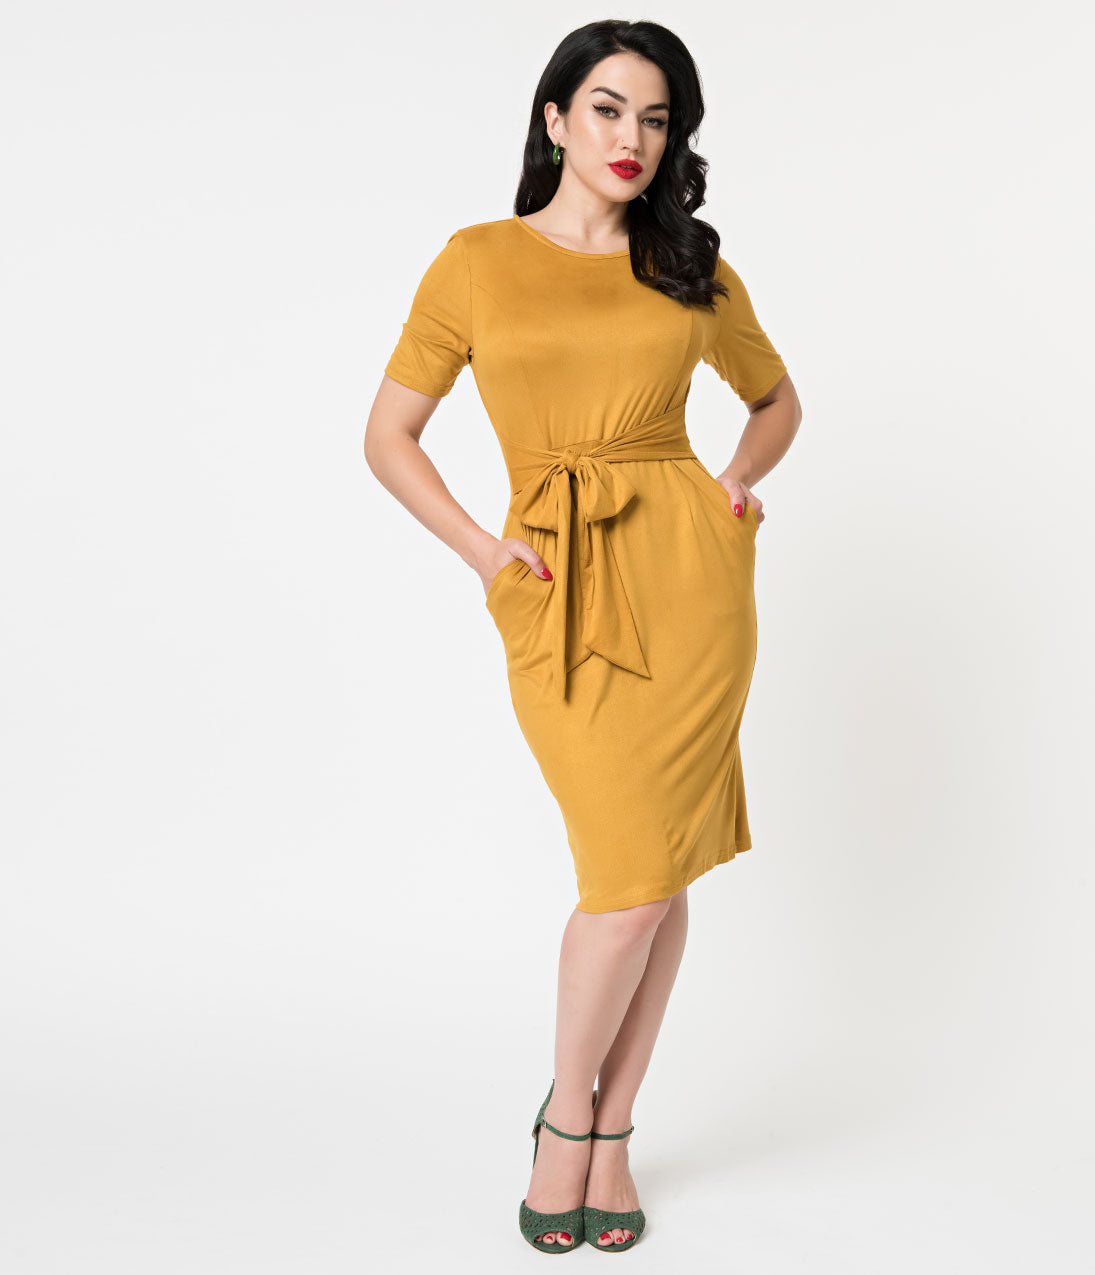 1960s Dresses | 60s Dresses Mod, Mini, Jakie O, Hippie Mustard Yellow Suede Short Sleeve Wiggle Dress $52.00 AT vintagedancer.com